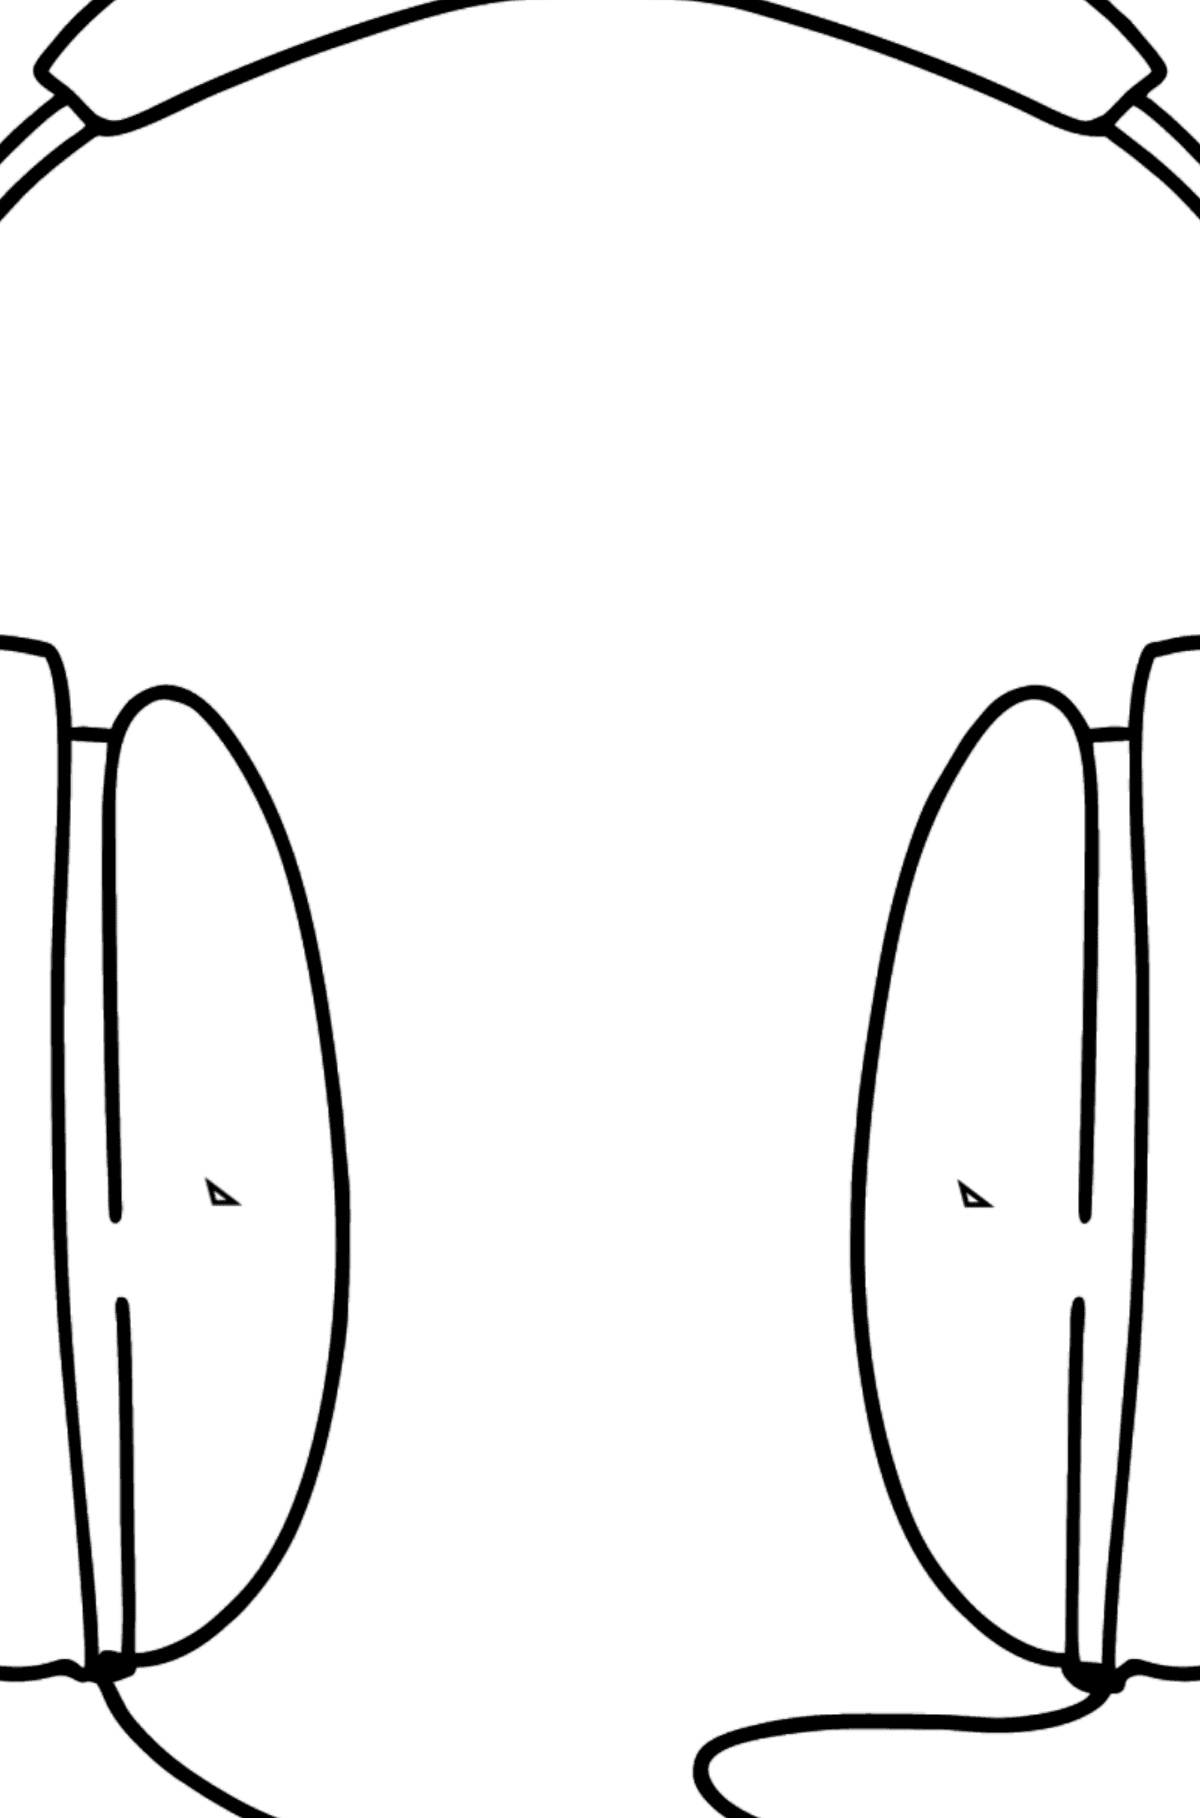 Headphones coloring page - Coloring by Geometric Shapes for Kids